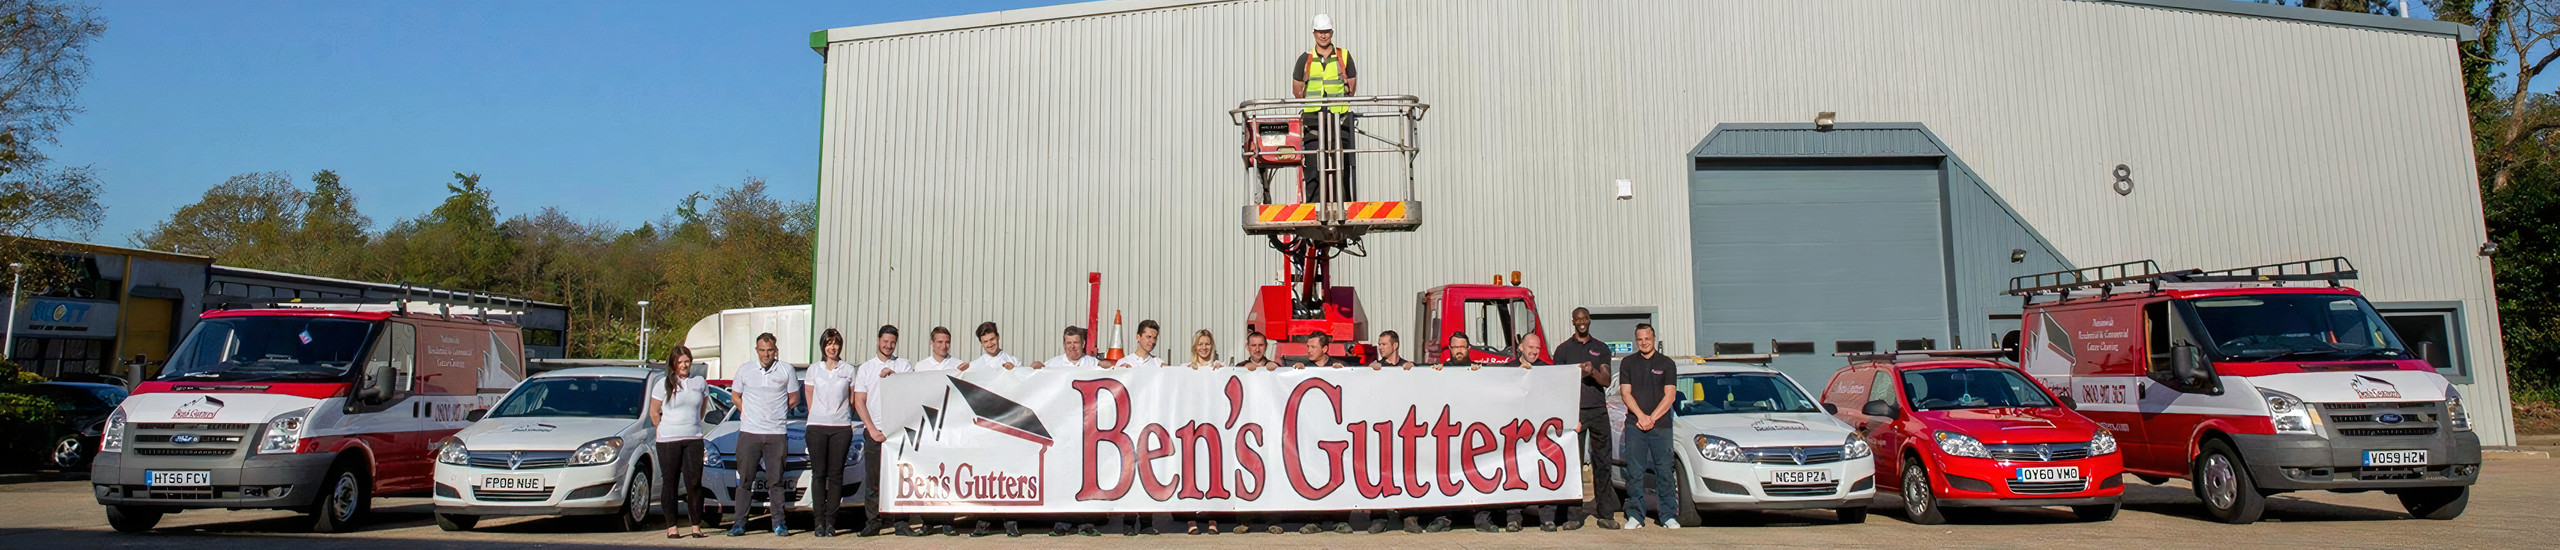 bens gutters Carnforth